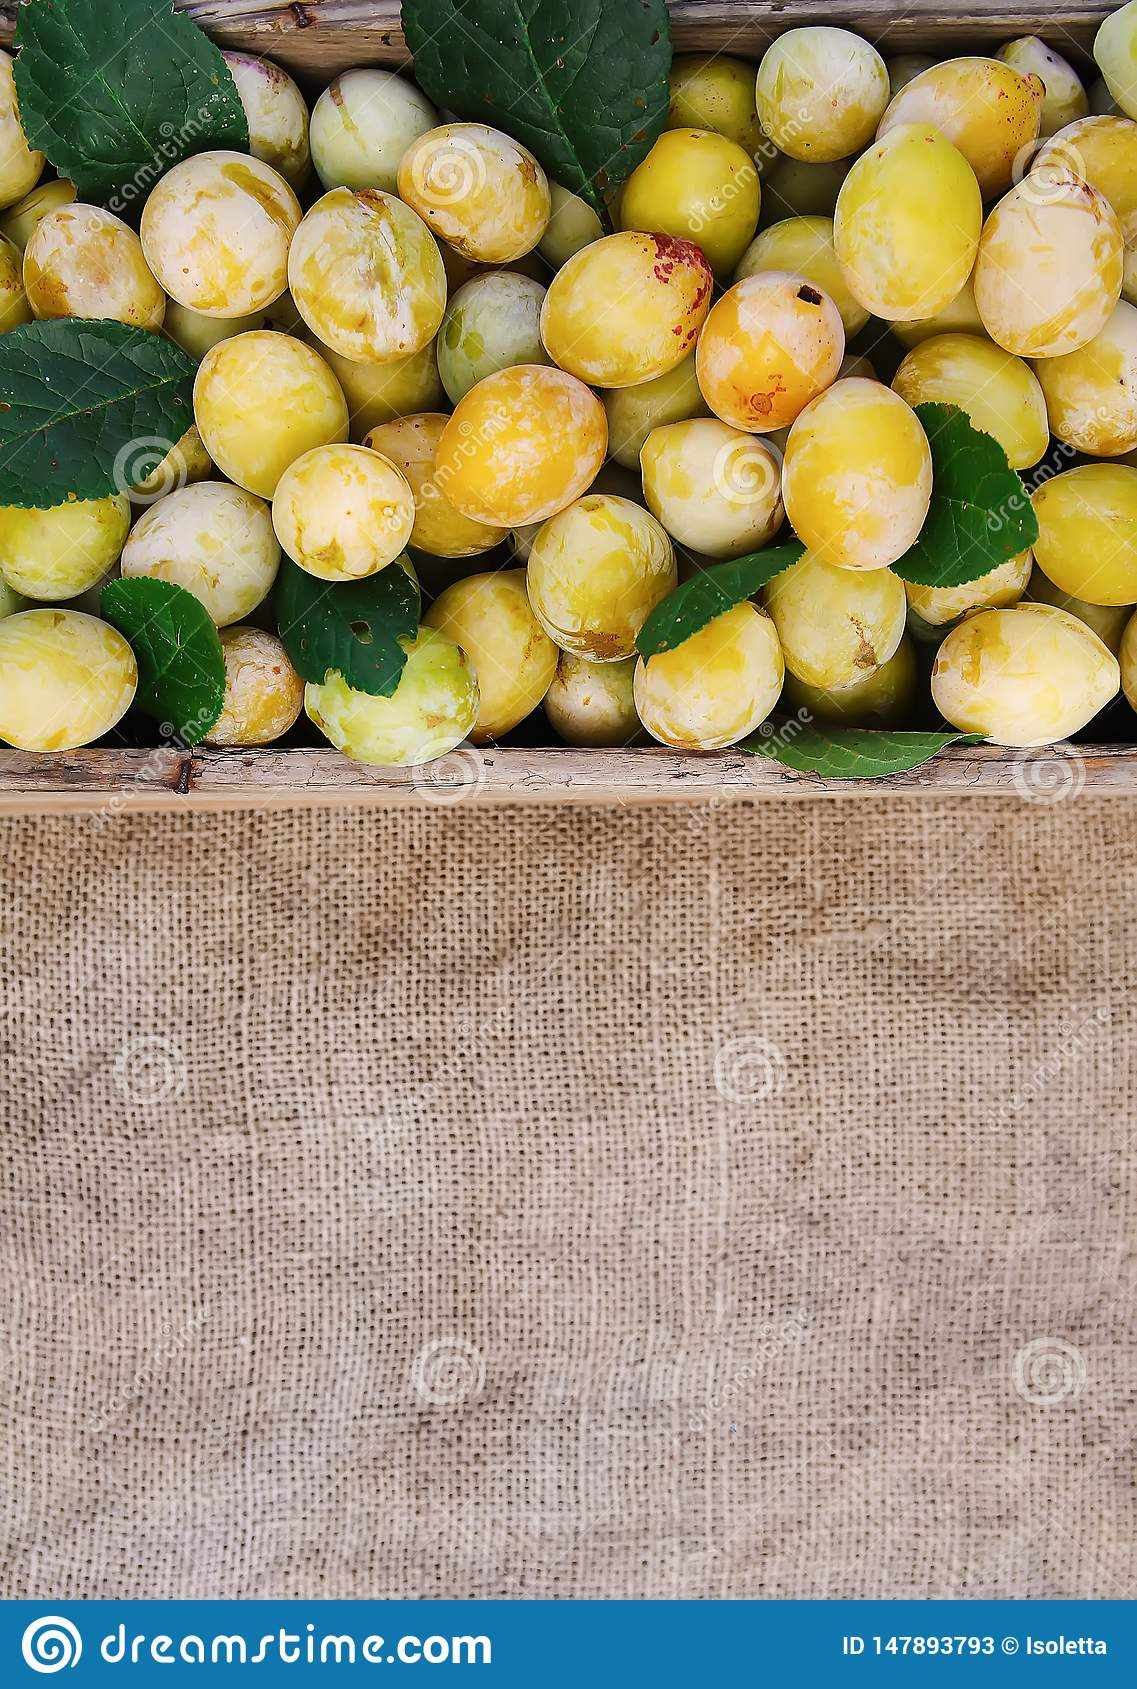 Fresh yellow plums. Ripe fruits in a wooden box on rough burlap surface